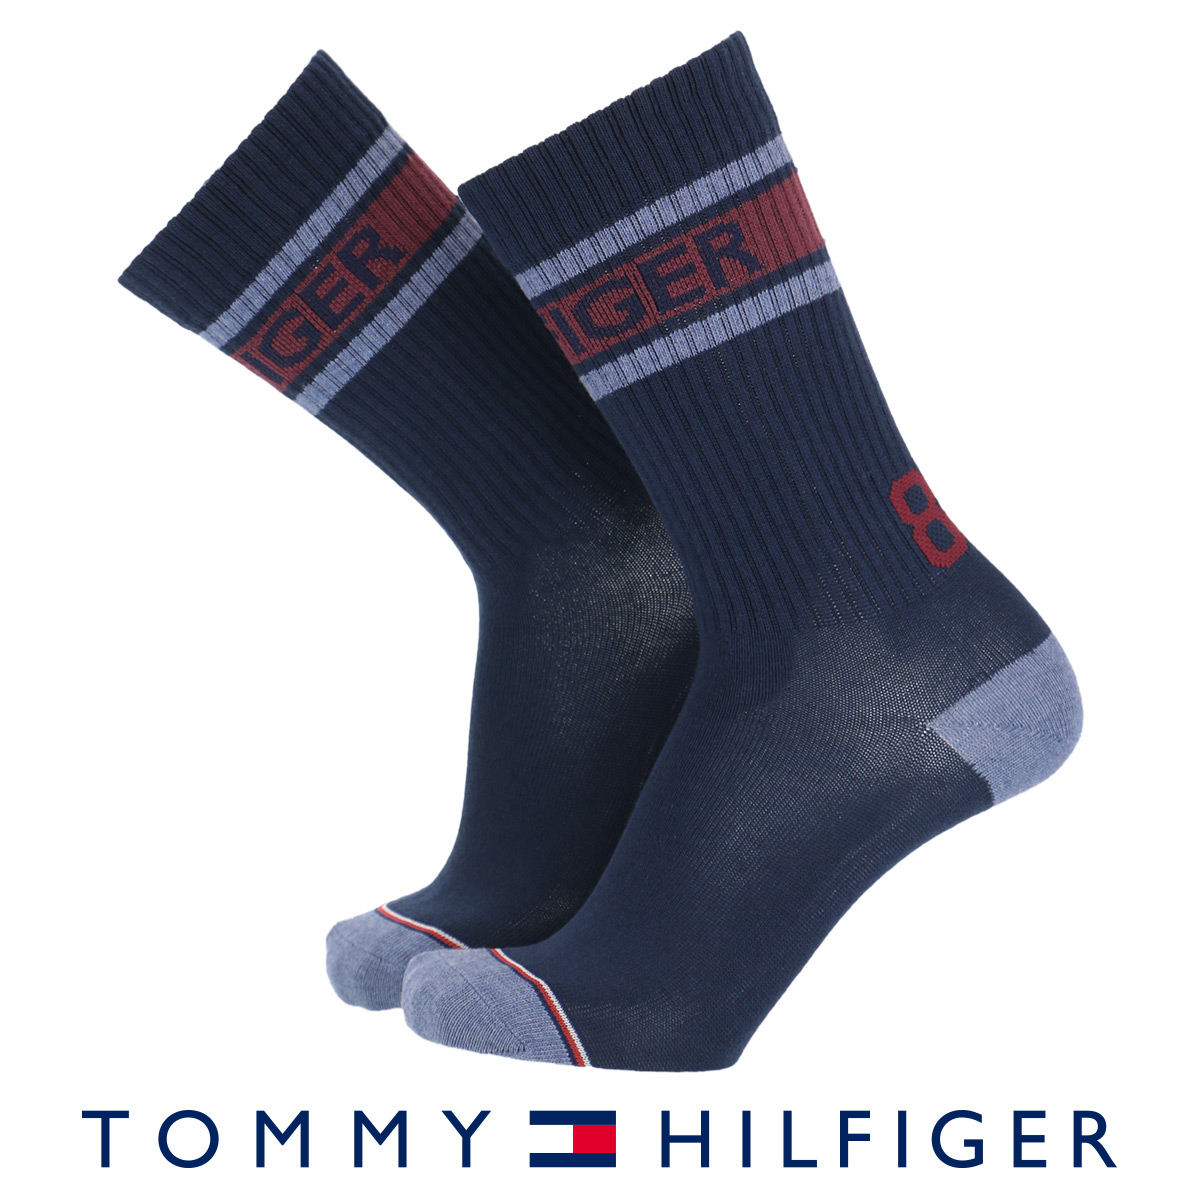 e43a635524ab9 glanage  A sale! 30% OFF TOMMY HILFIGER